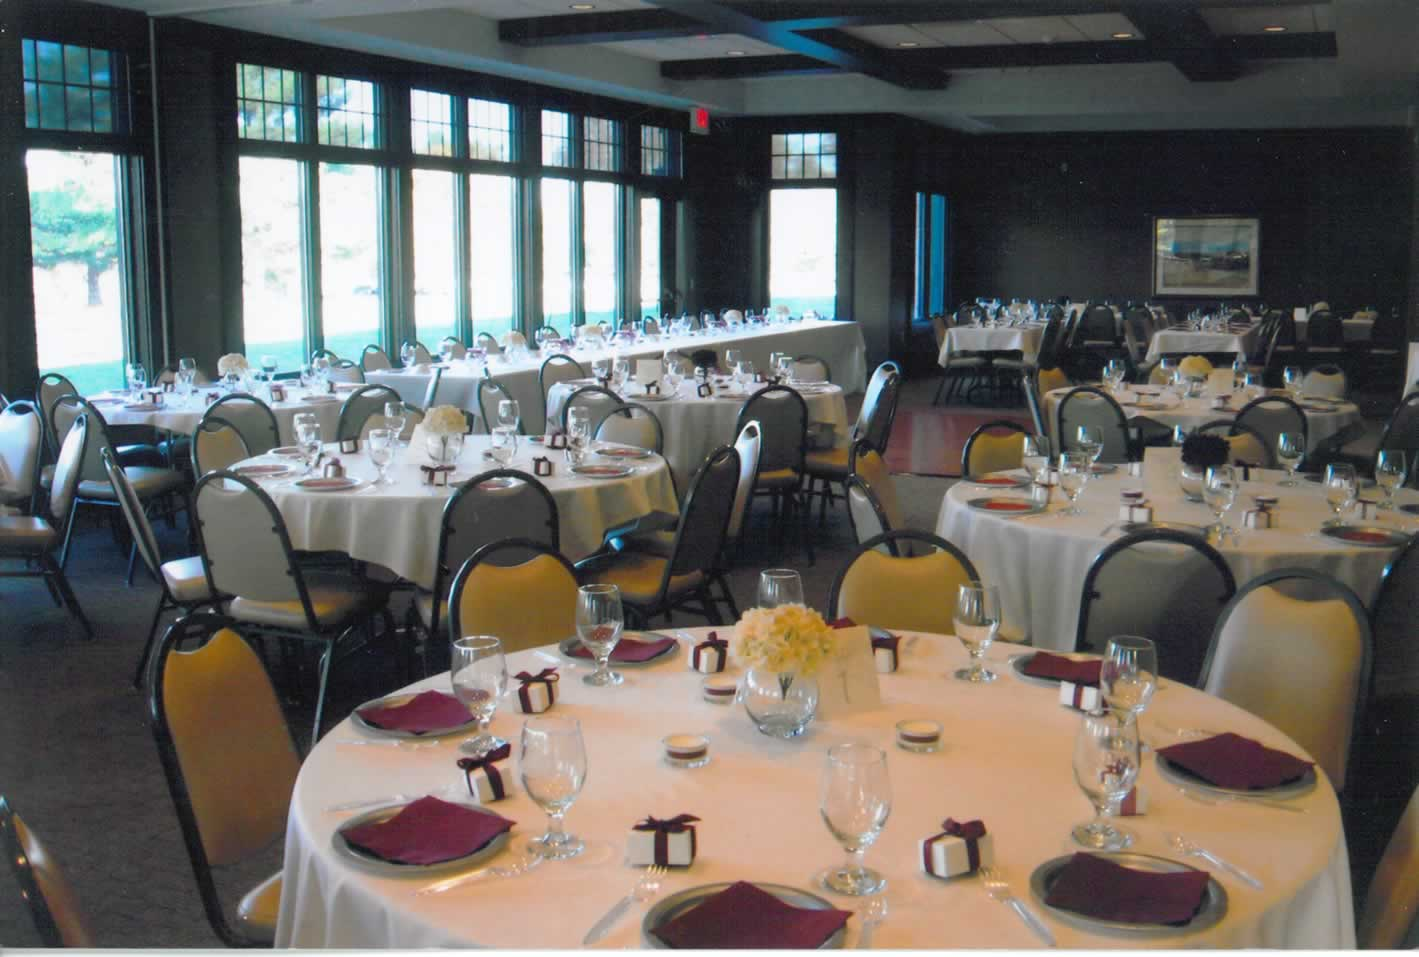 Phalen Center banquet center dining room